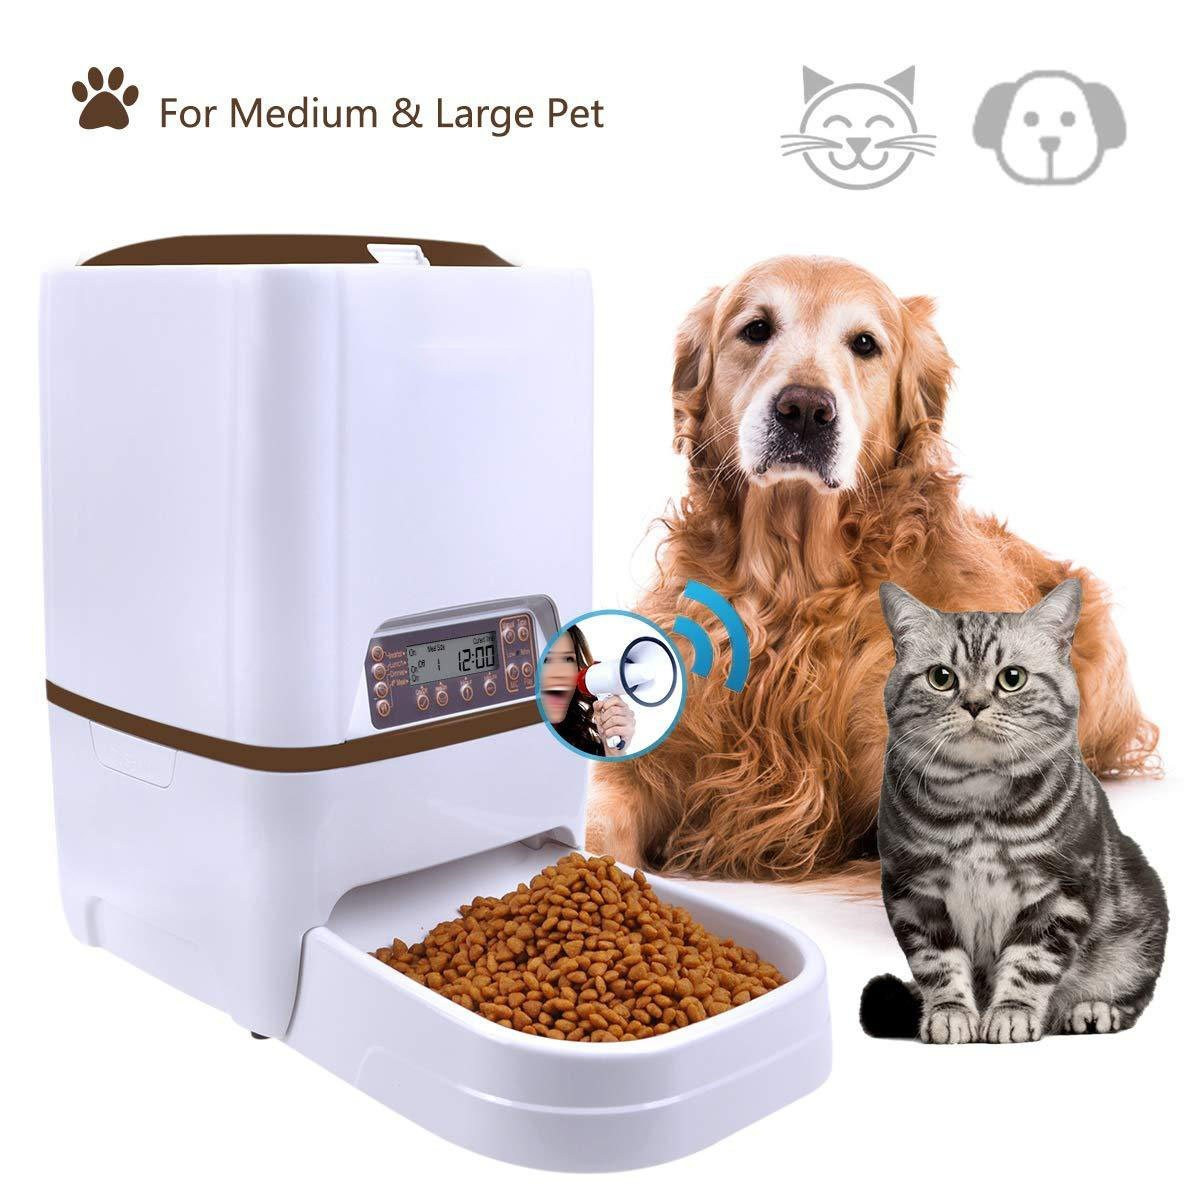 Automatic Pet Feeder, IR Detect